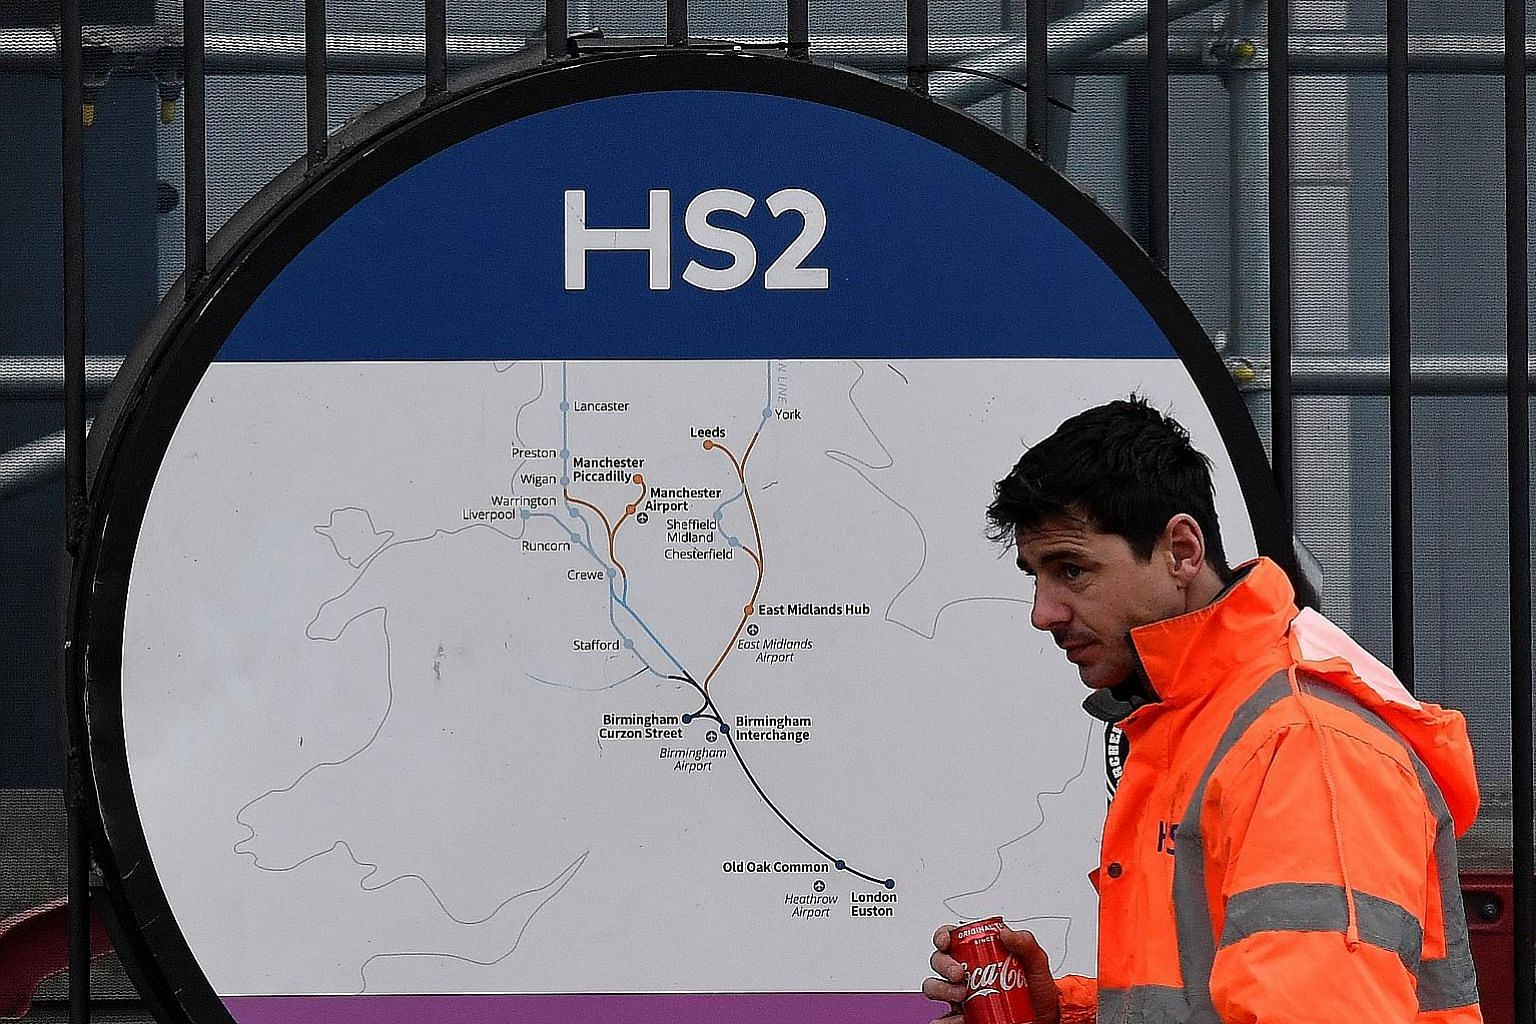 SenSat, a London-based geospatial data company, is modelling the route of the proposed HS2 railway line running from London to the north-west of Britain, creating some 18 billion data points. That should help builders monitor the project's progress t